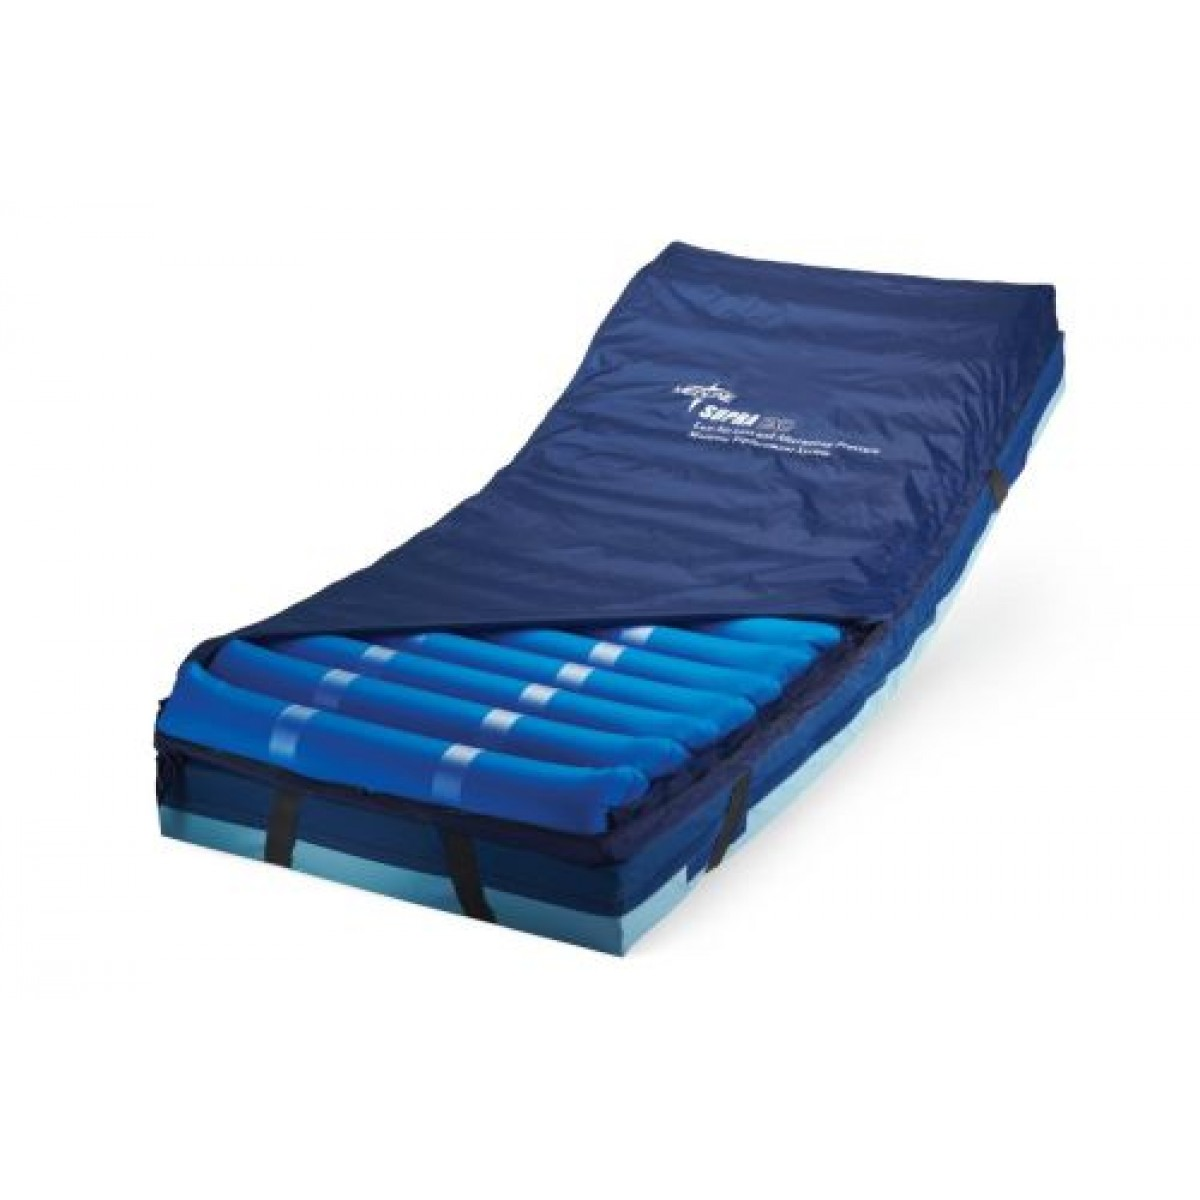 Medline Supra Exo Mattress Overlay Mdt24supraexo